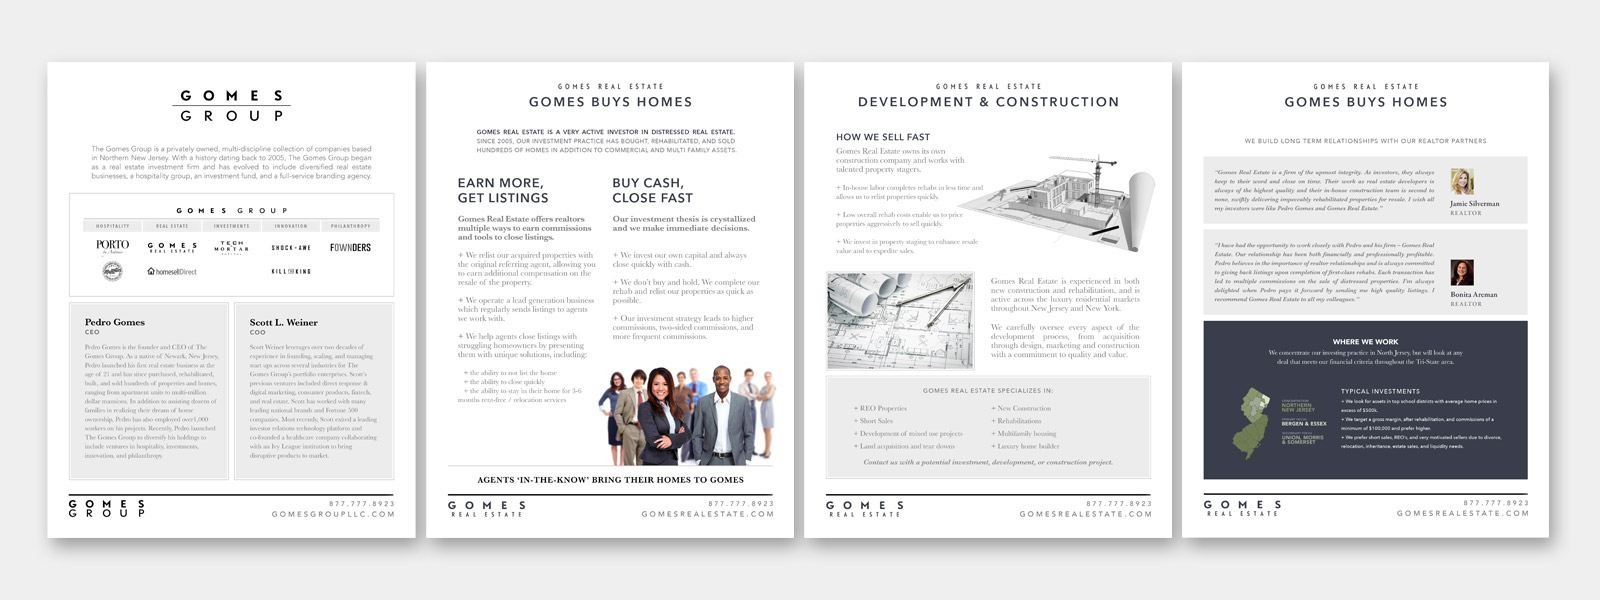 RE EVOLUTION // Real Estate Media Kit Design